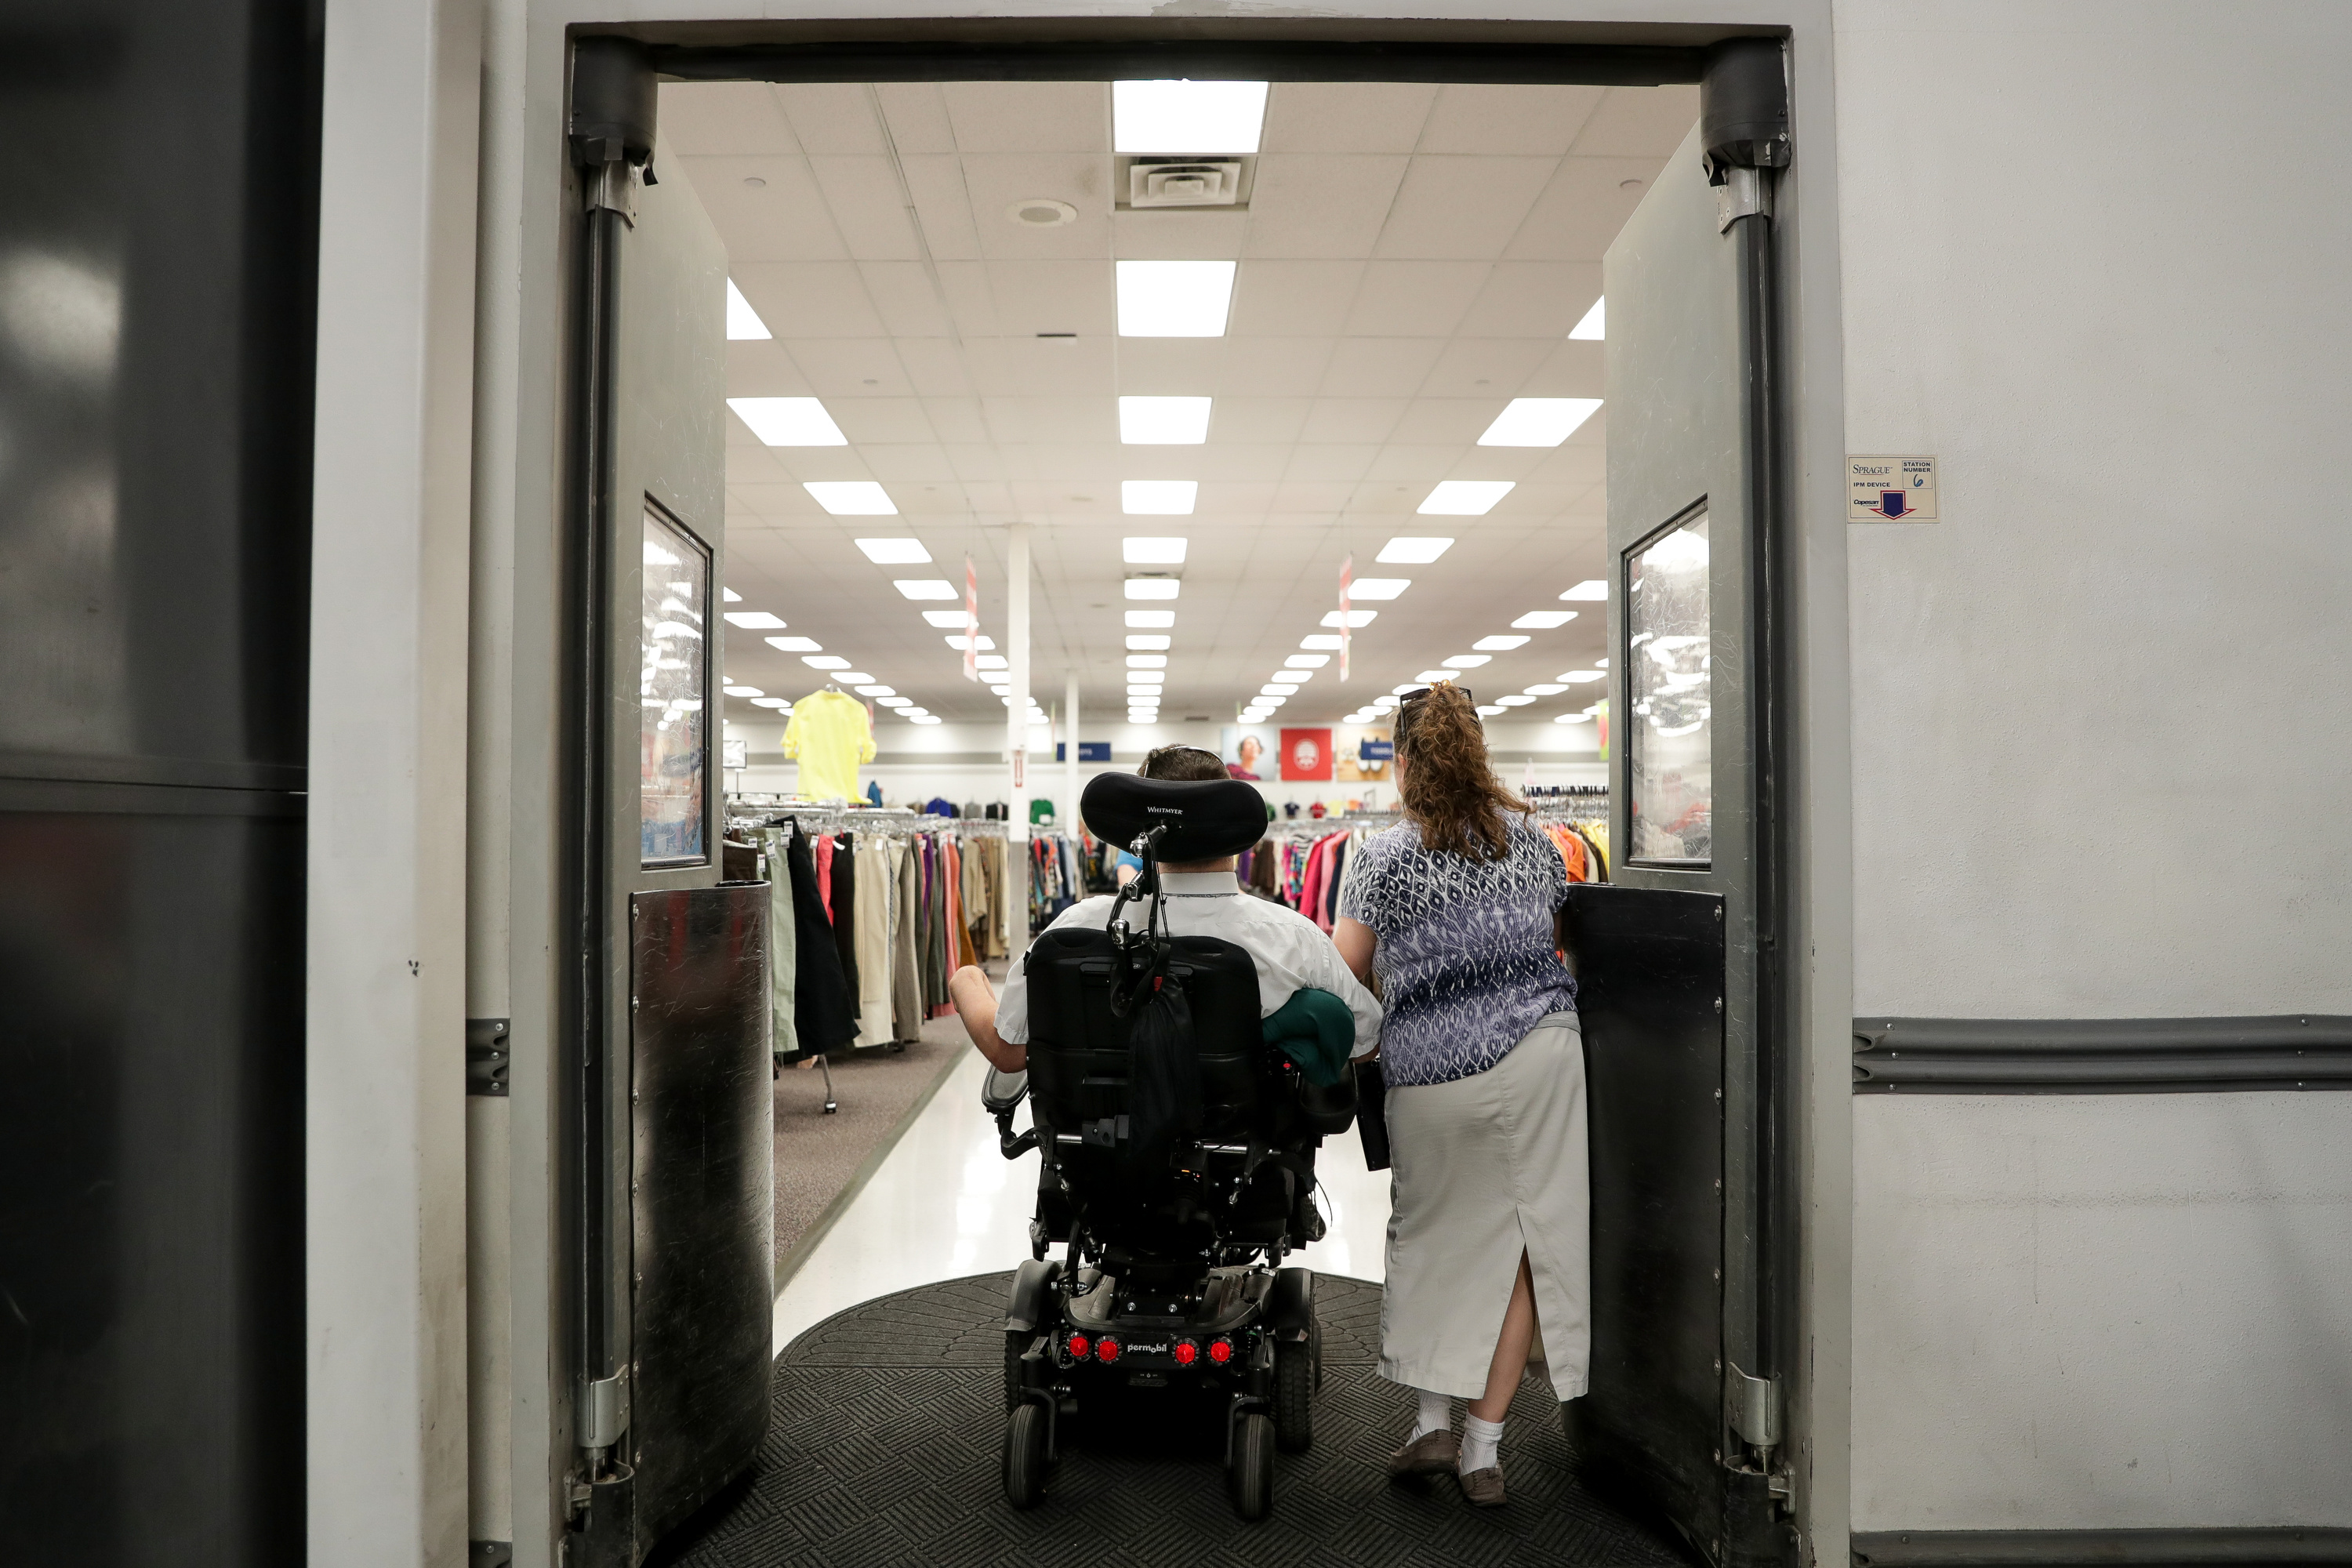 Orin Voorheis and his wife, Chartina, arrive at Deseret Industries in American Fork, Utah, where Orin works as a greeter, on Wednesday, July 11, 2018.